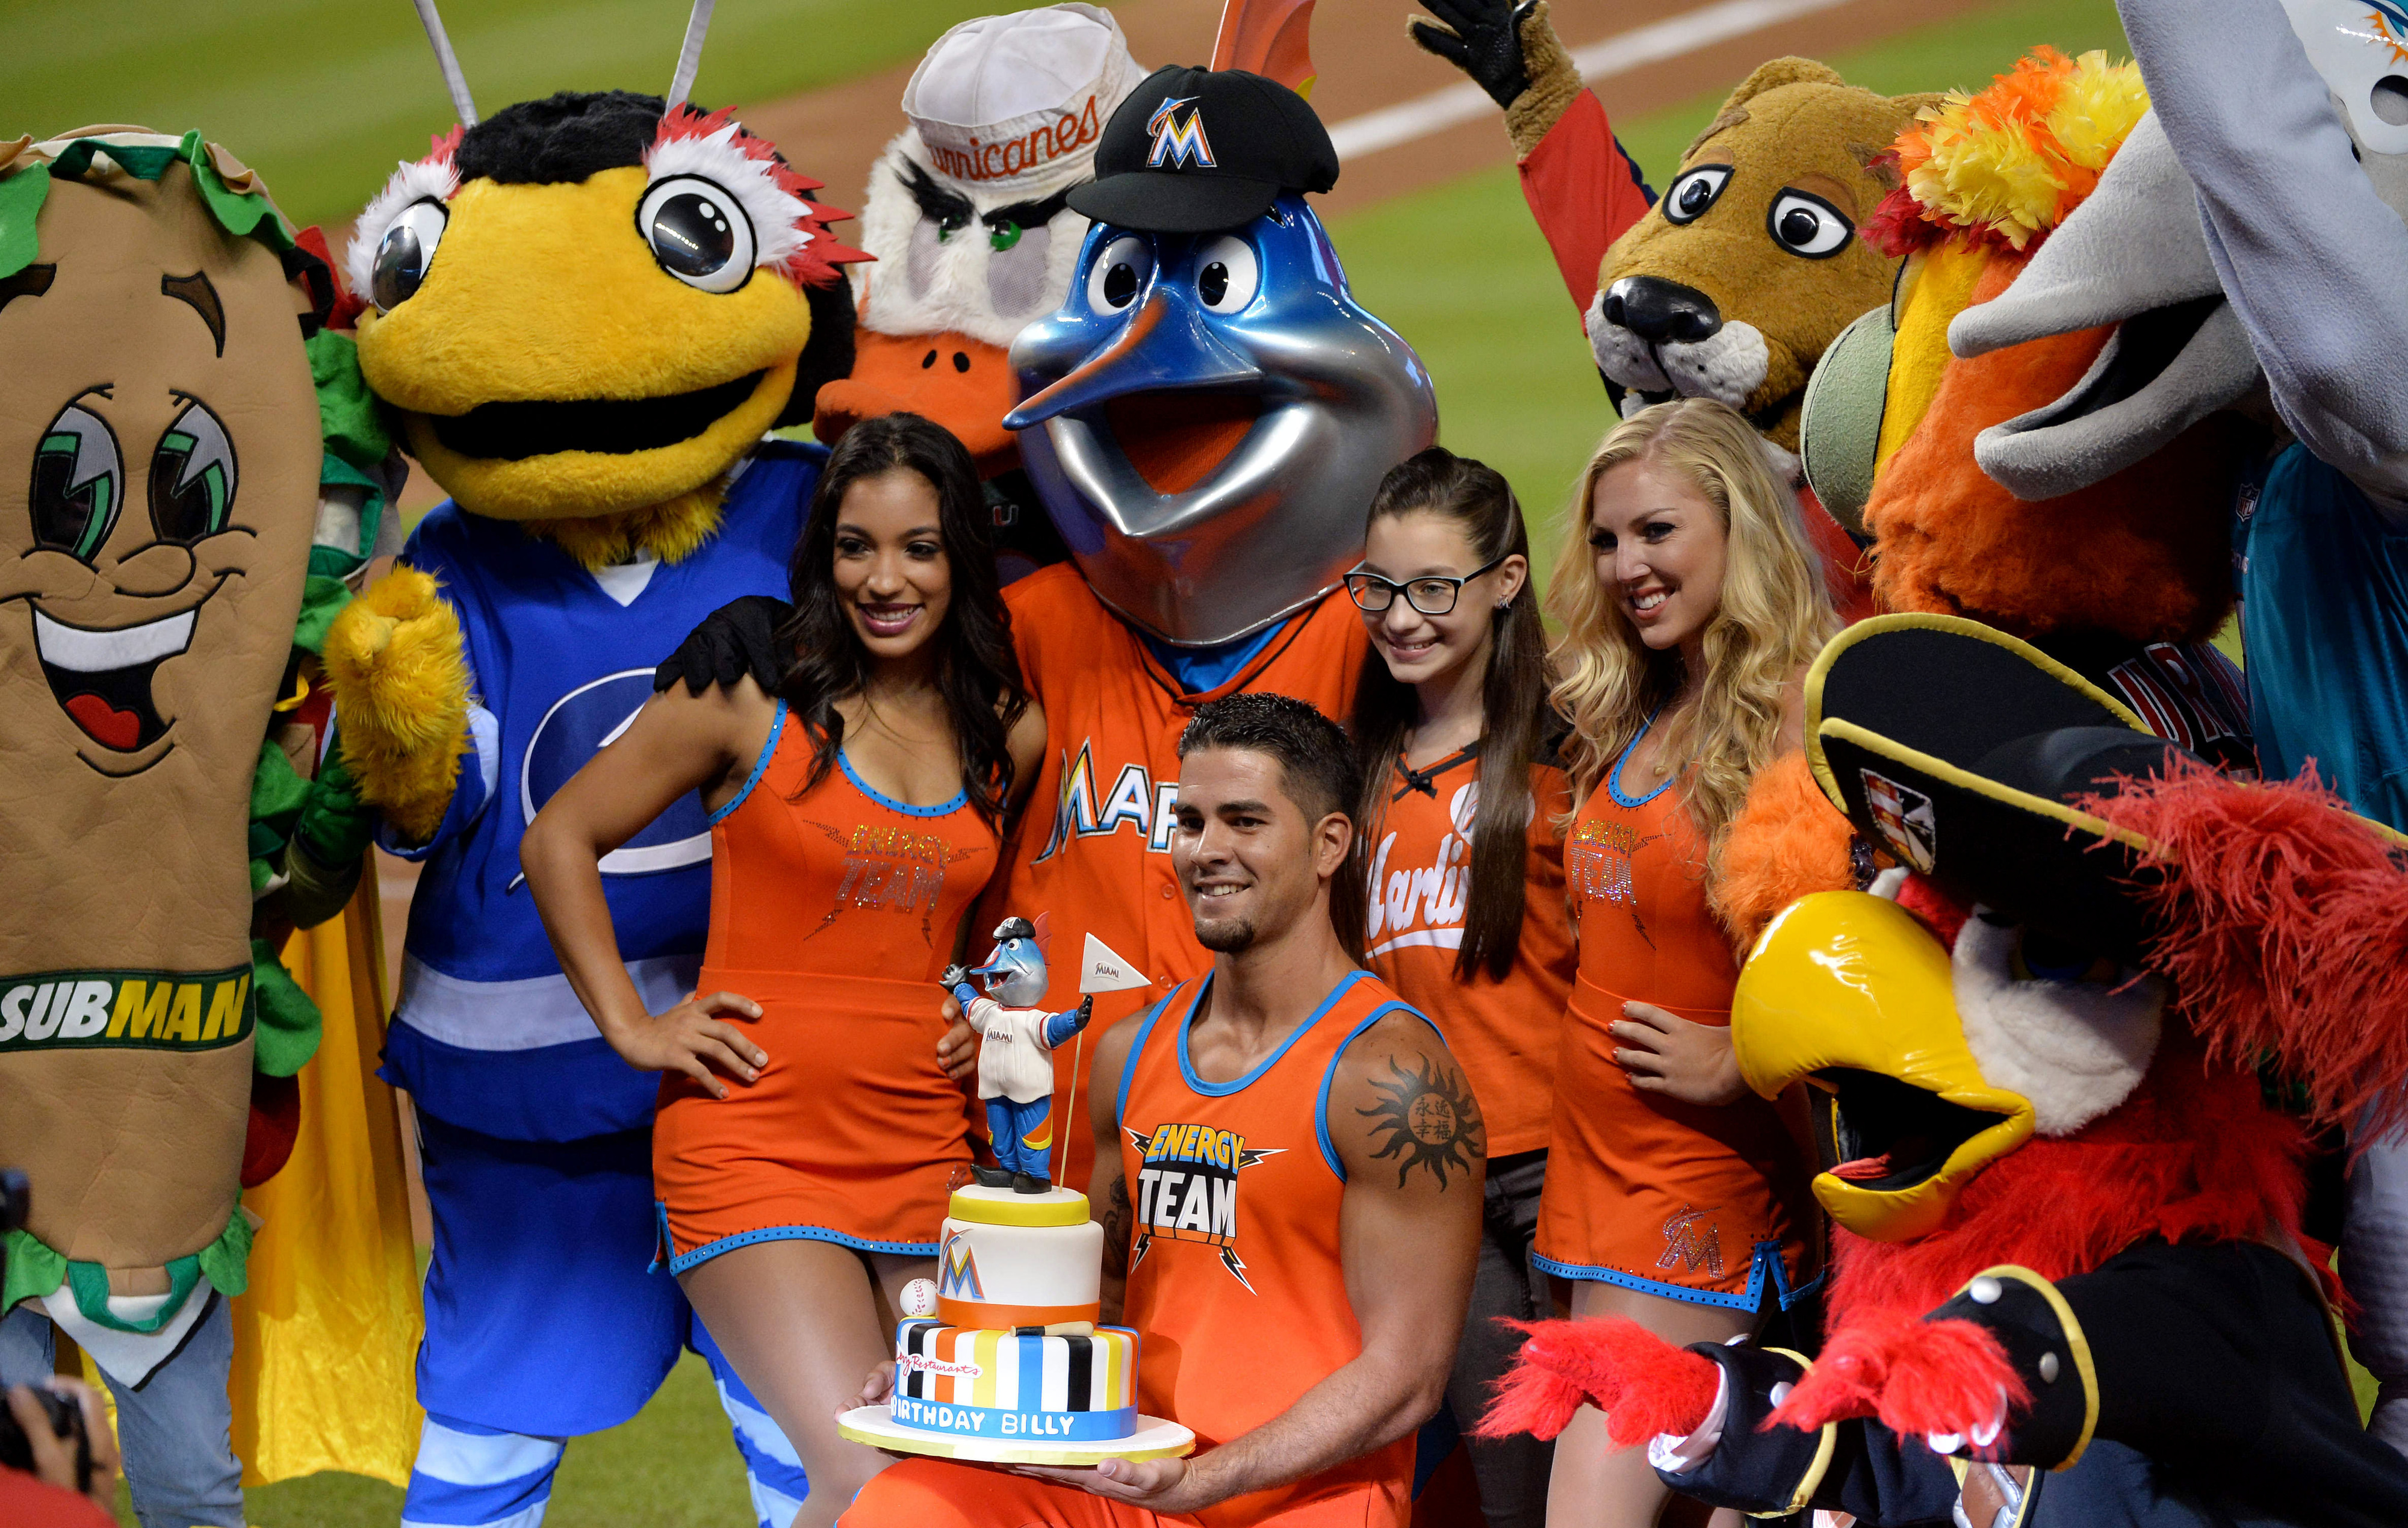 Billy the Marlin and the other mascots were in the running for funniest moment of the year for the Fish.